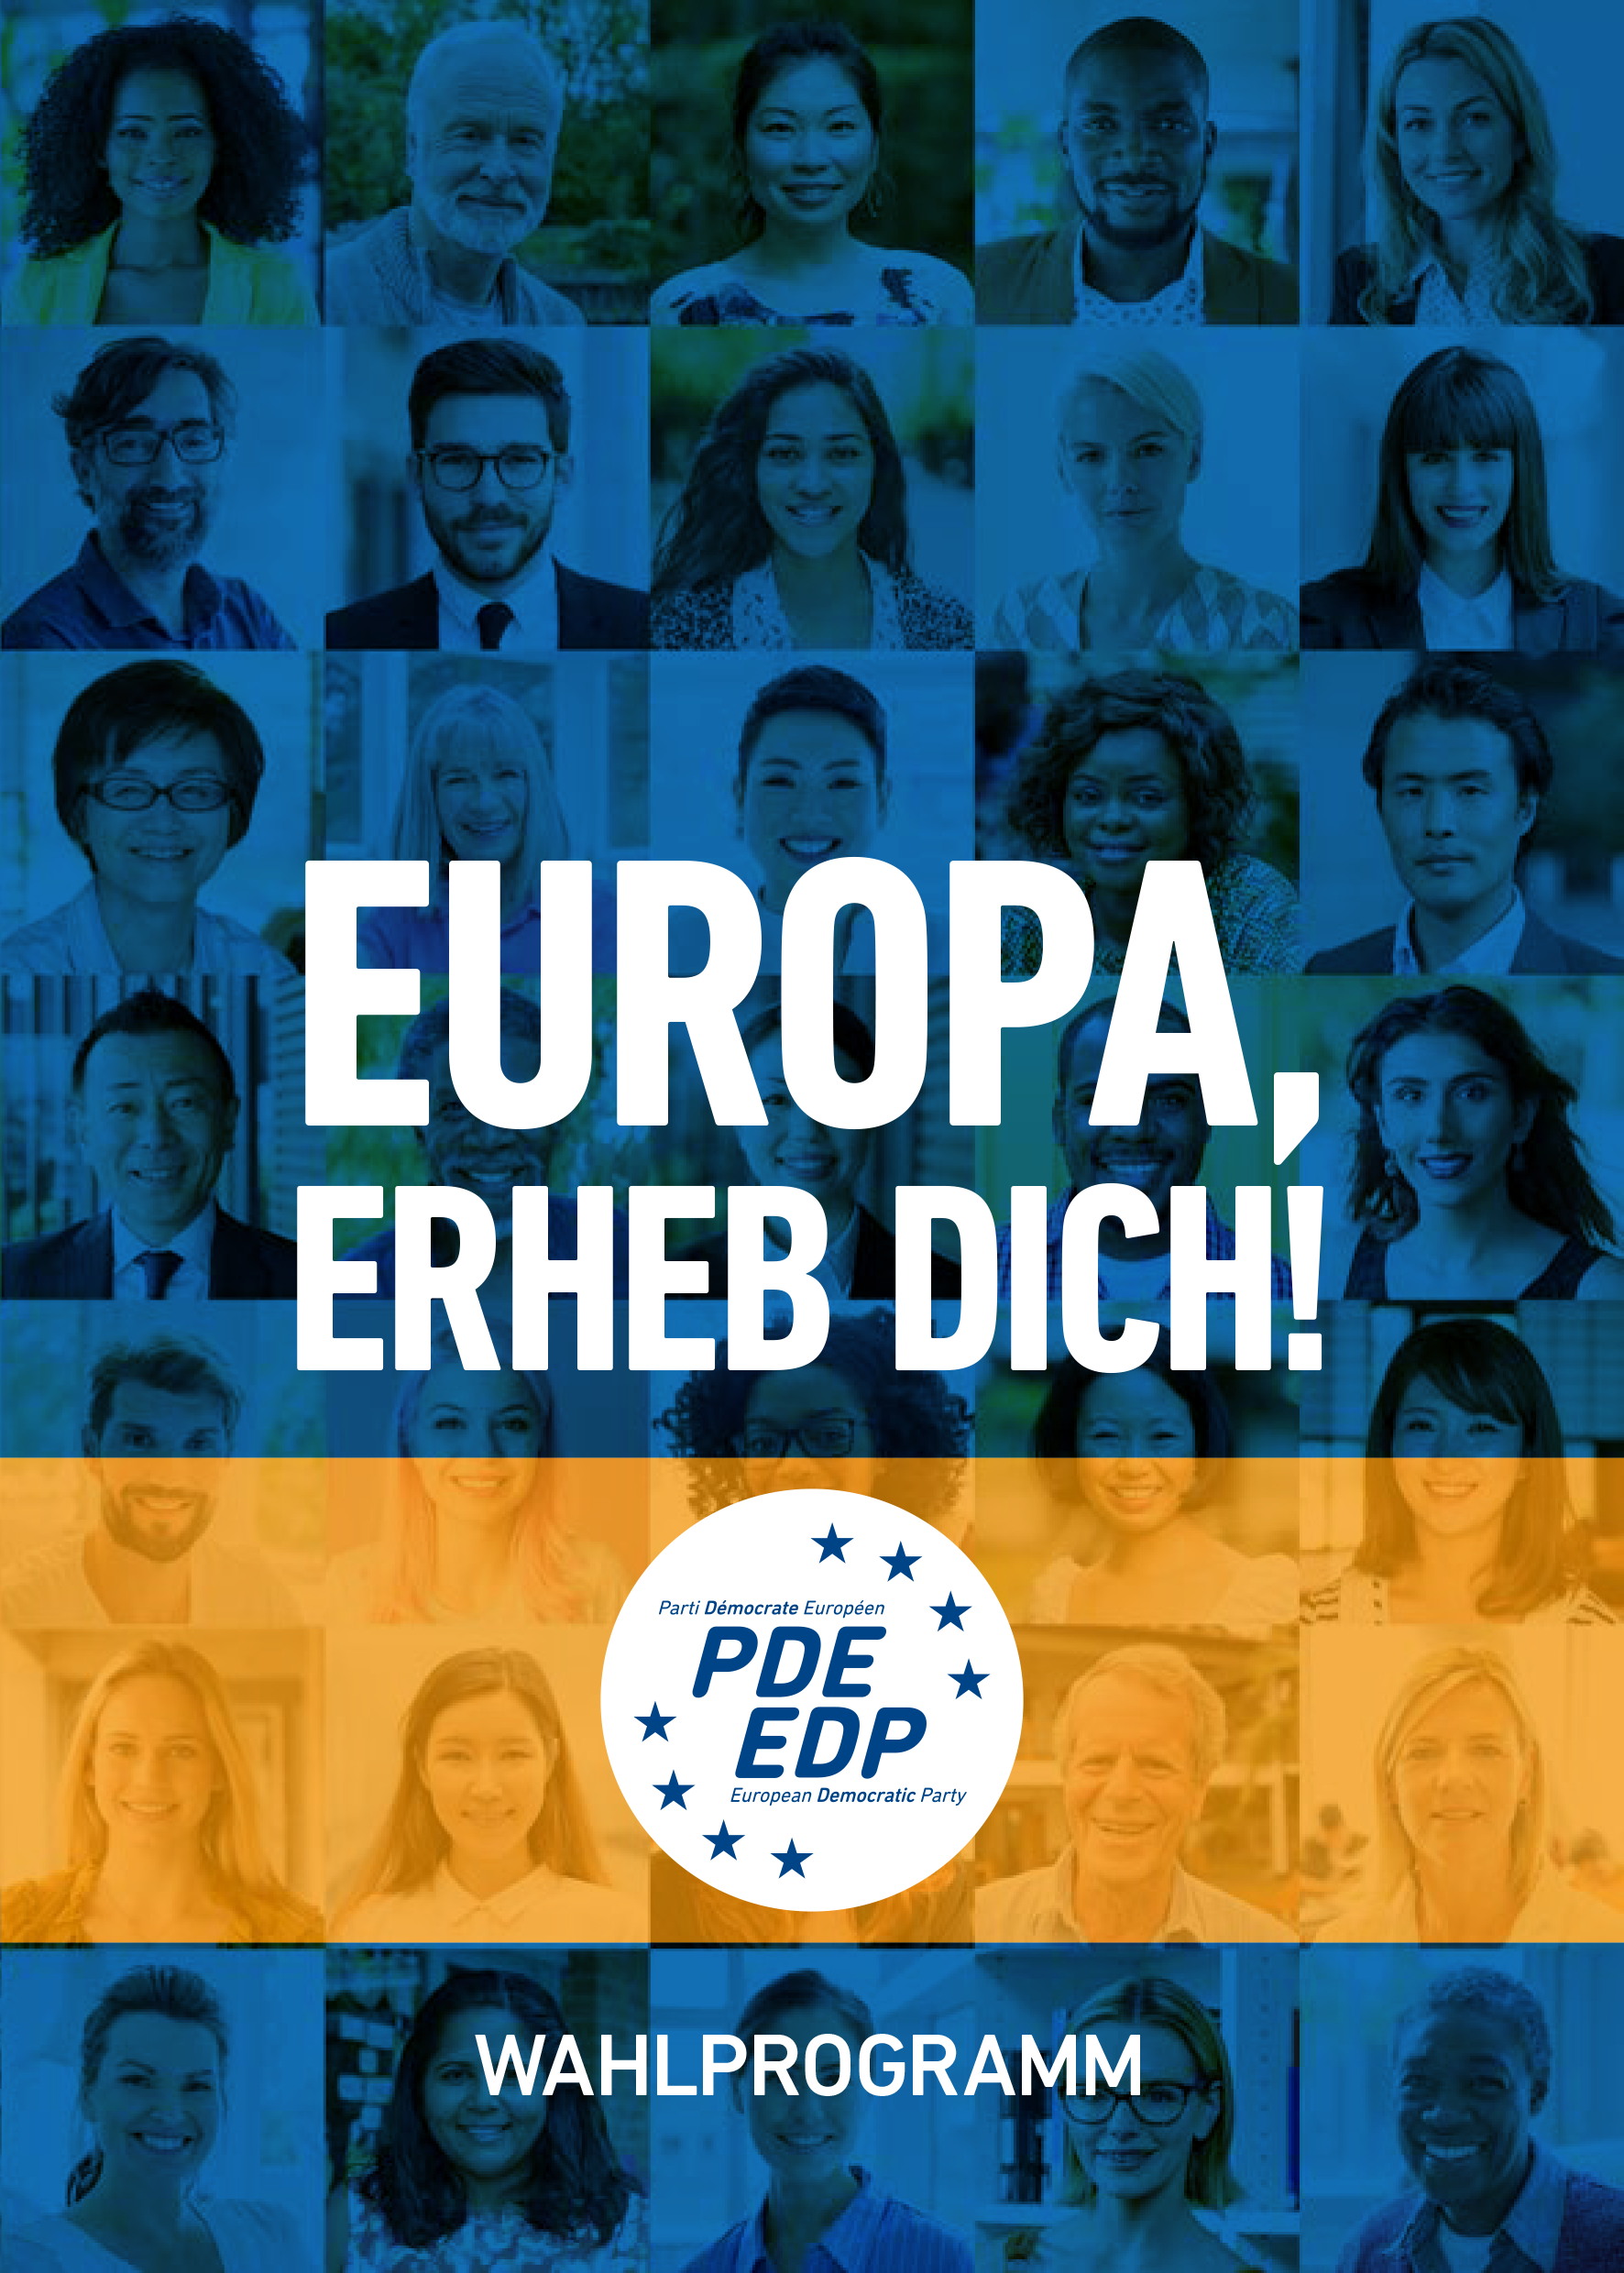 EDP manifesto in German